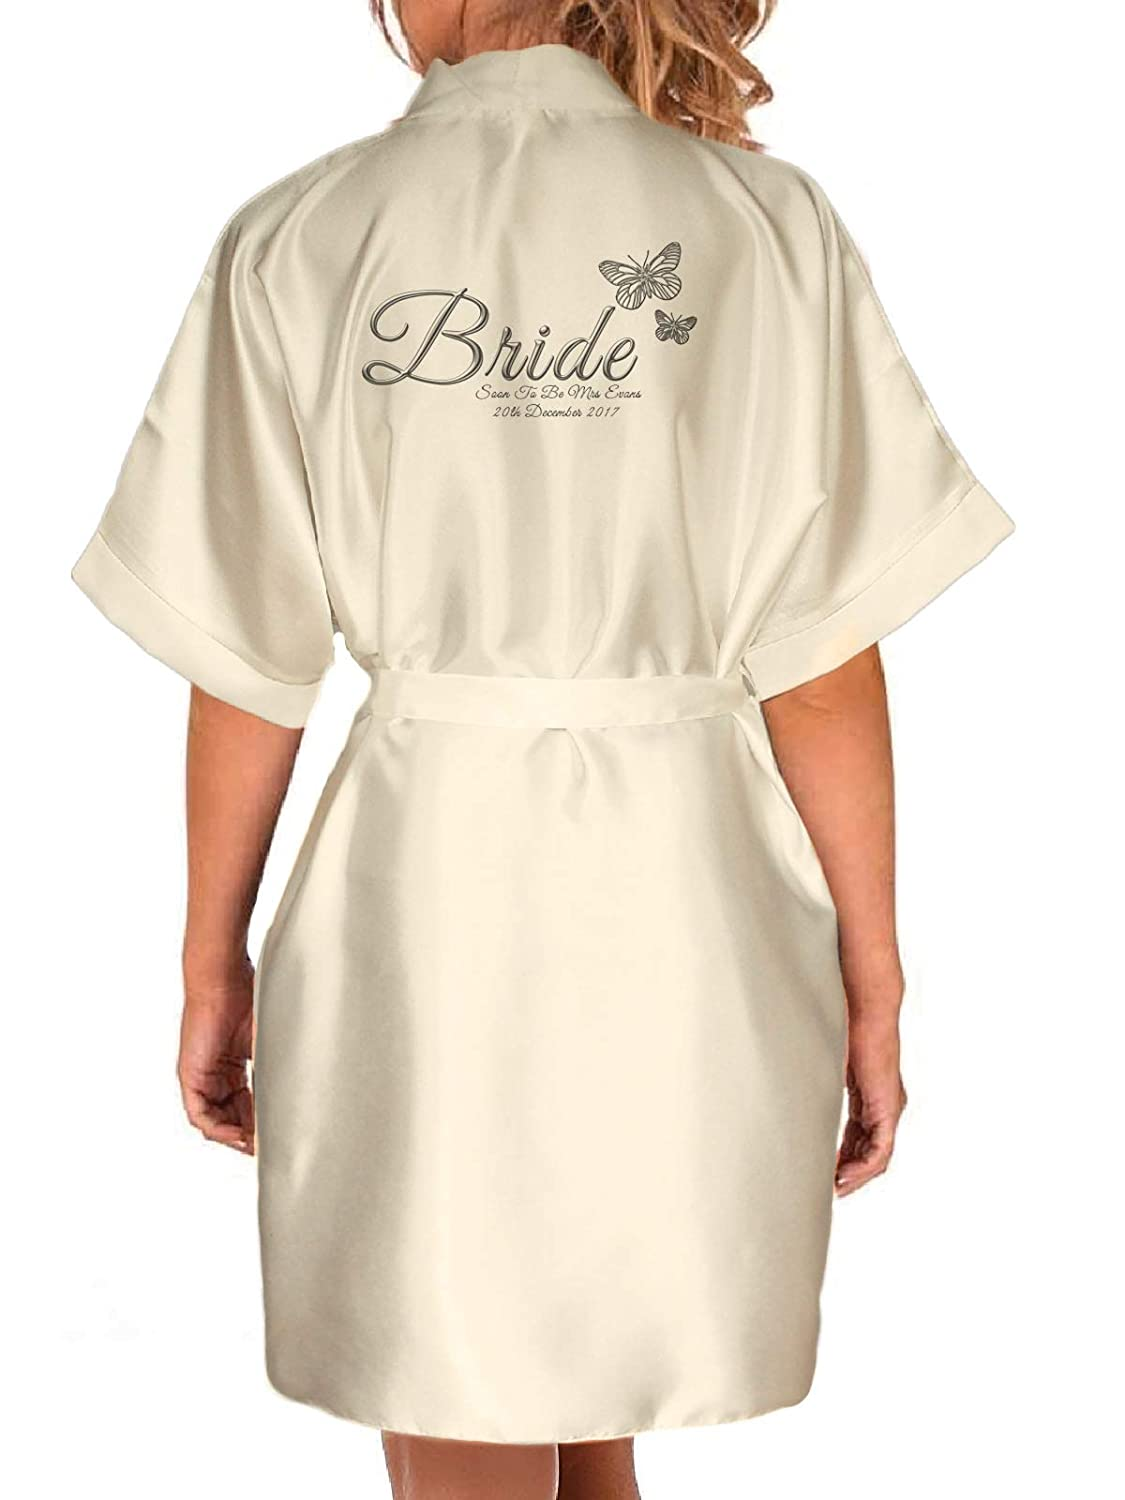 Inspired Creative Design Personalised Ivory Satin Kimono/Robe Printed Silver Effect Butterfly Design. Bride, Bridesmaid, (2-4 Yrs) Inspired Creative Design ®